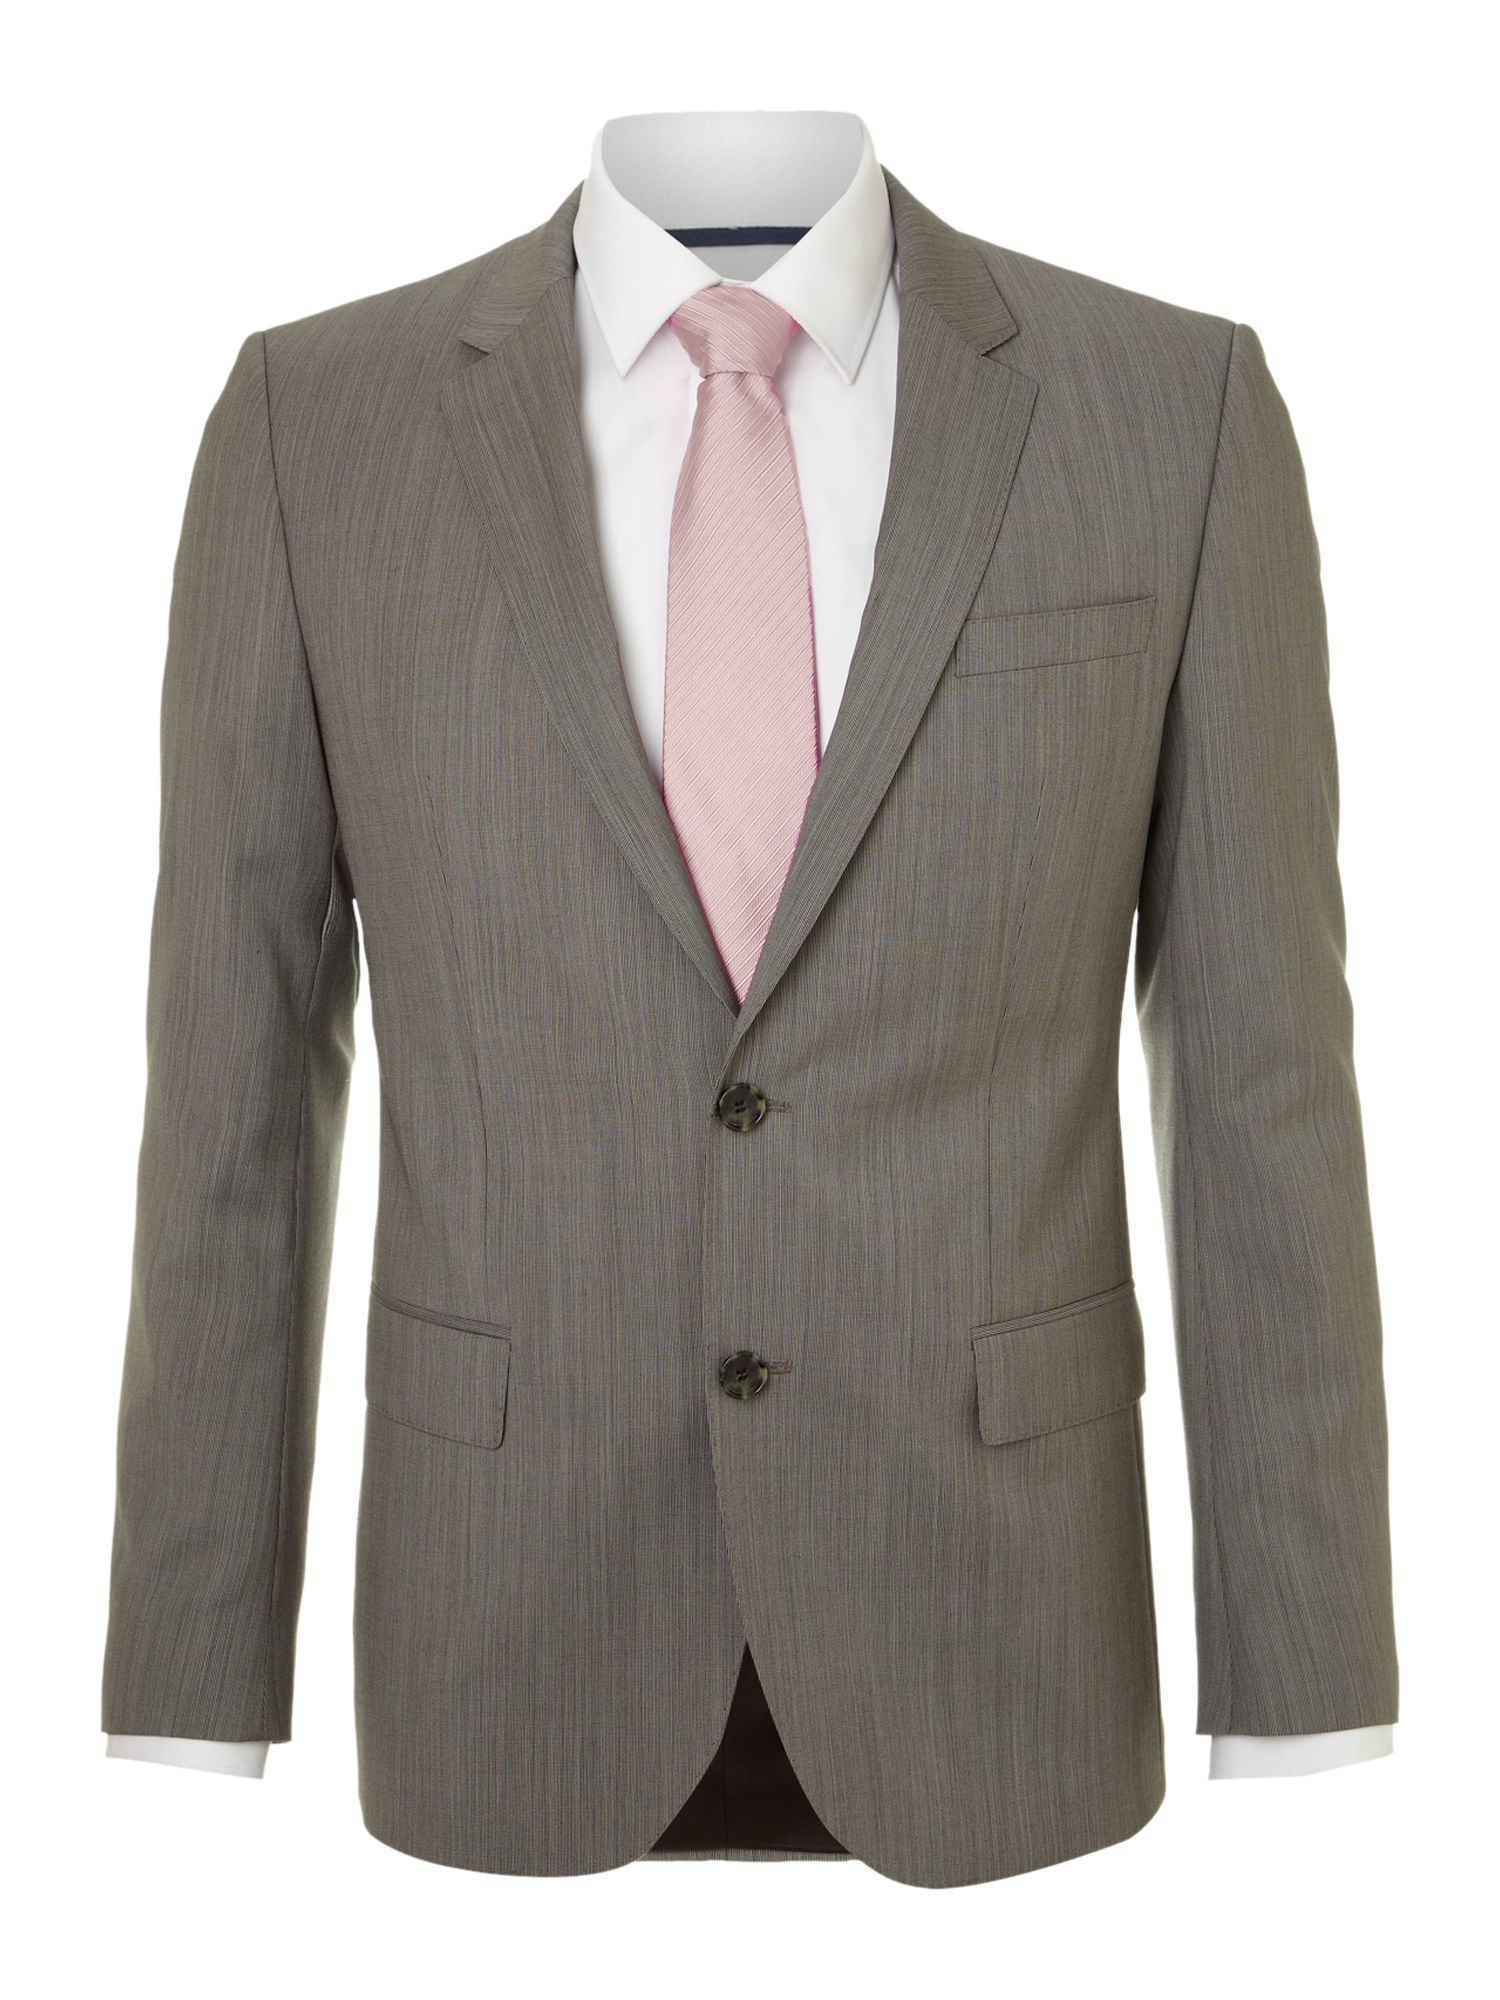 Huge Genius slim fit textured suit